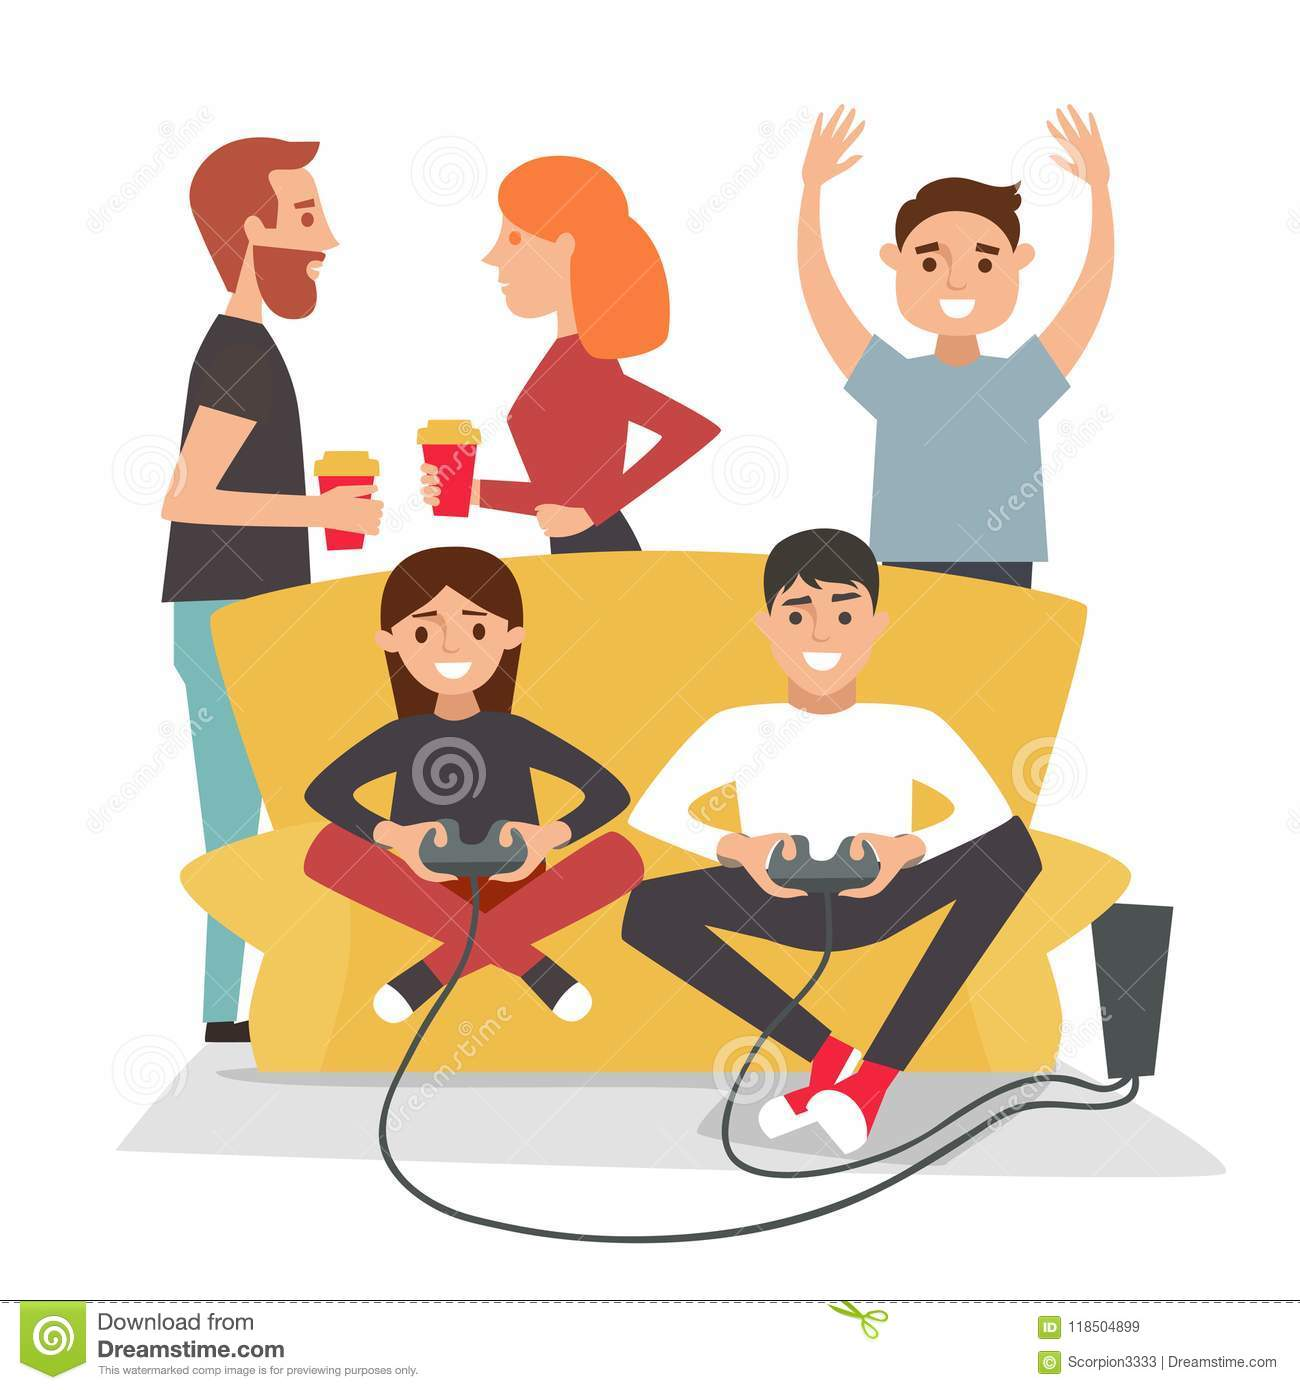 Home party. People play video games and have fun.